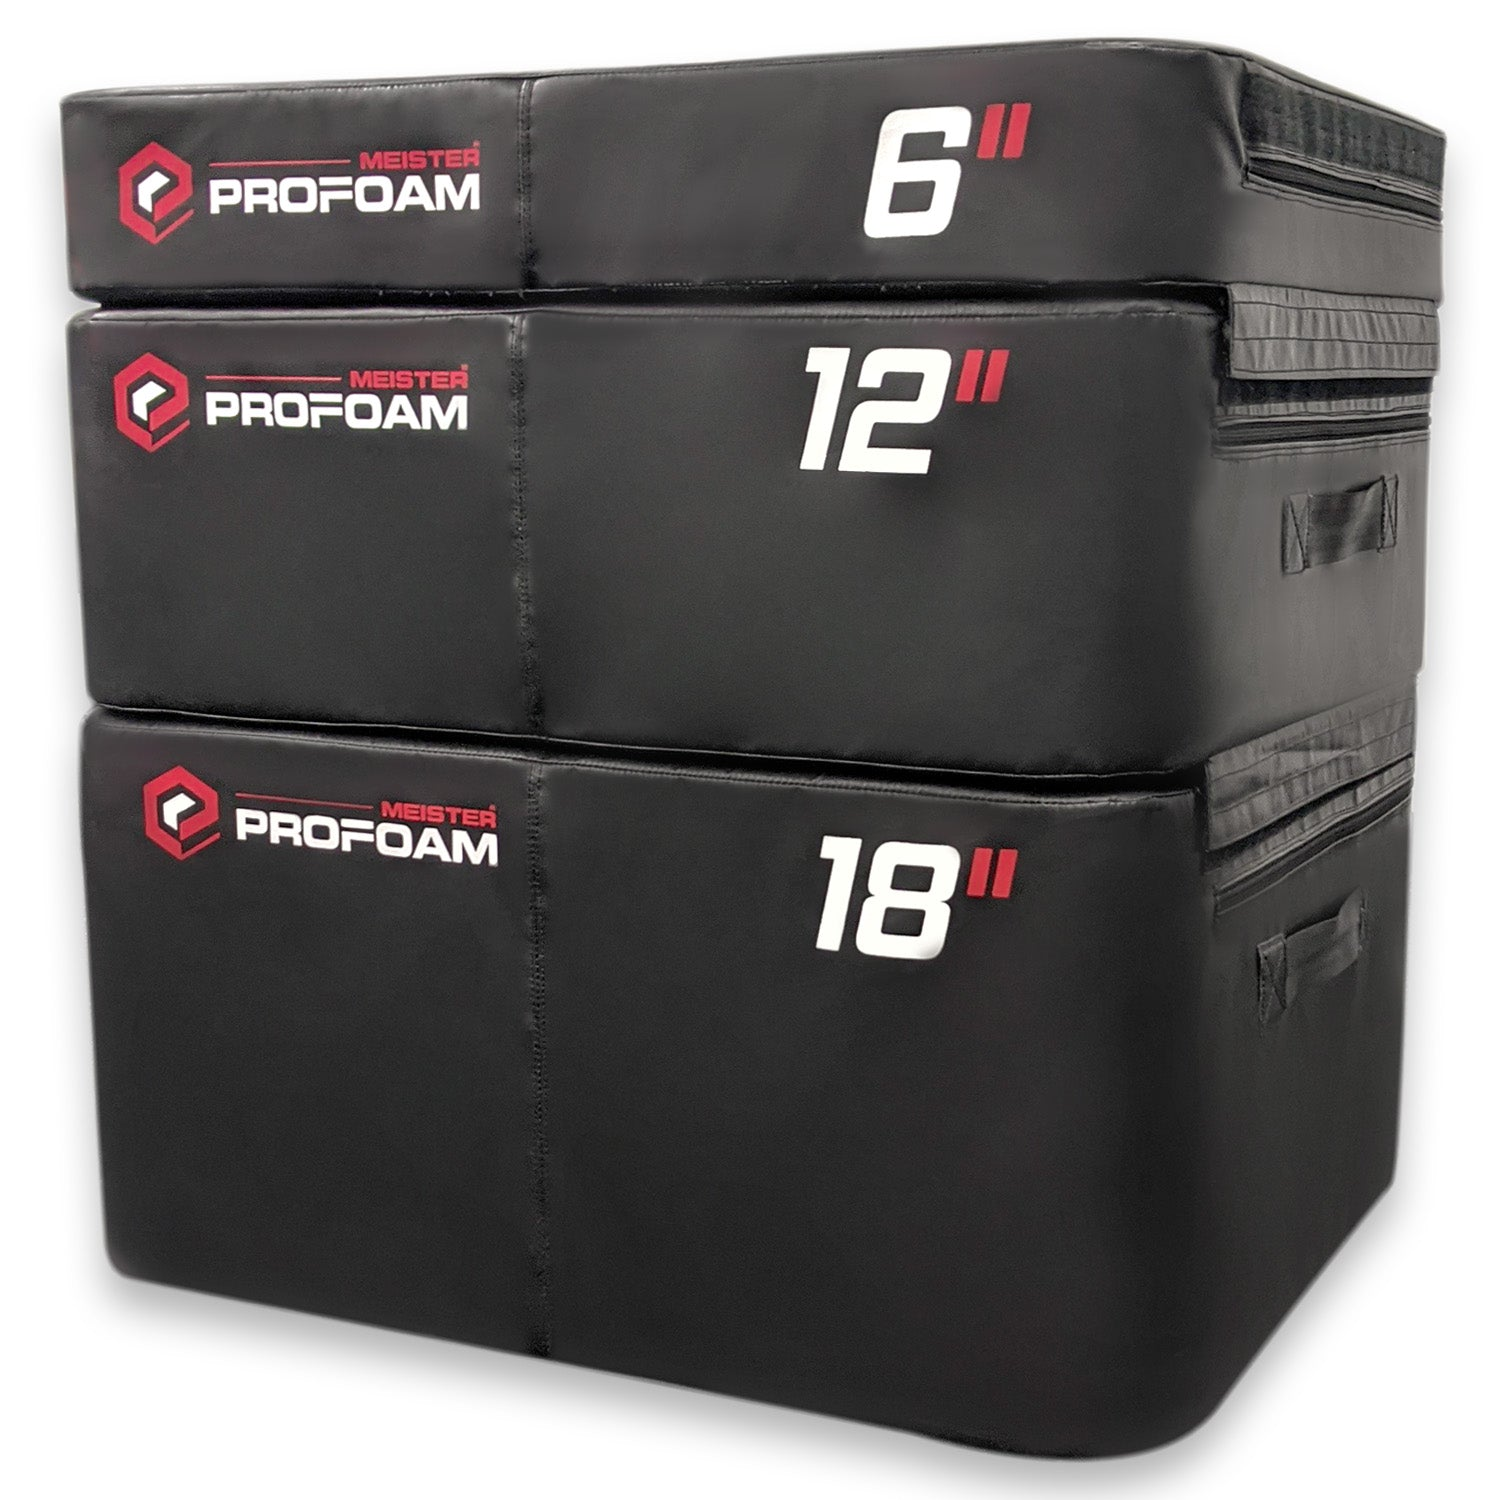 "Meister PROFOAM™ Plyo Boxes - 3 Box Set - 18"", 12"", 6"""